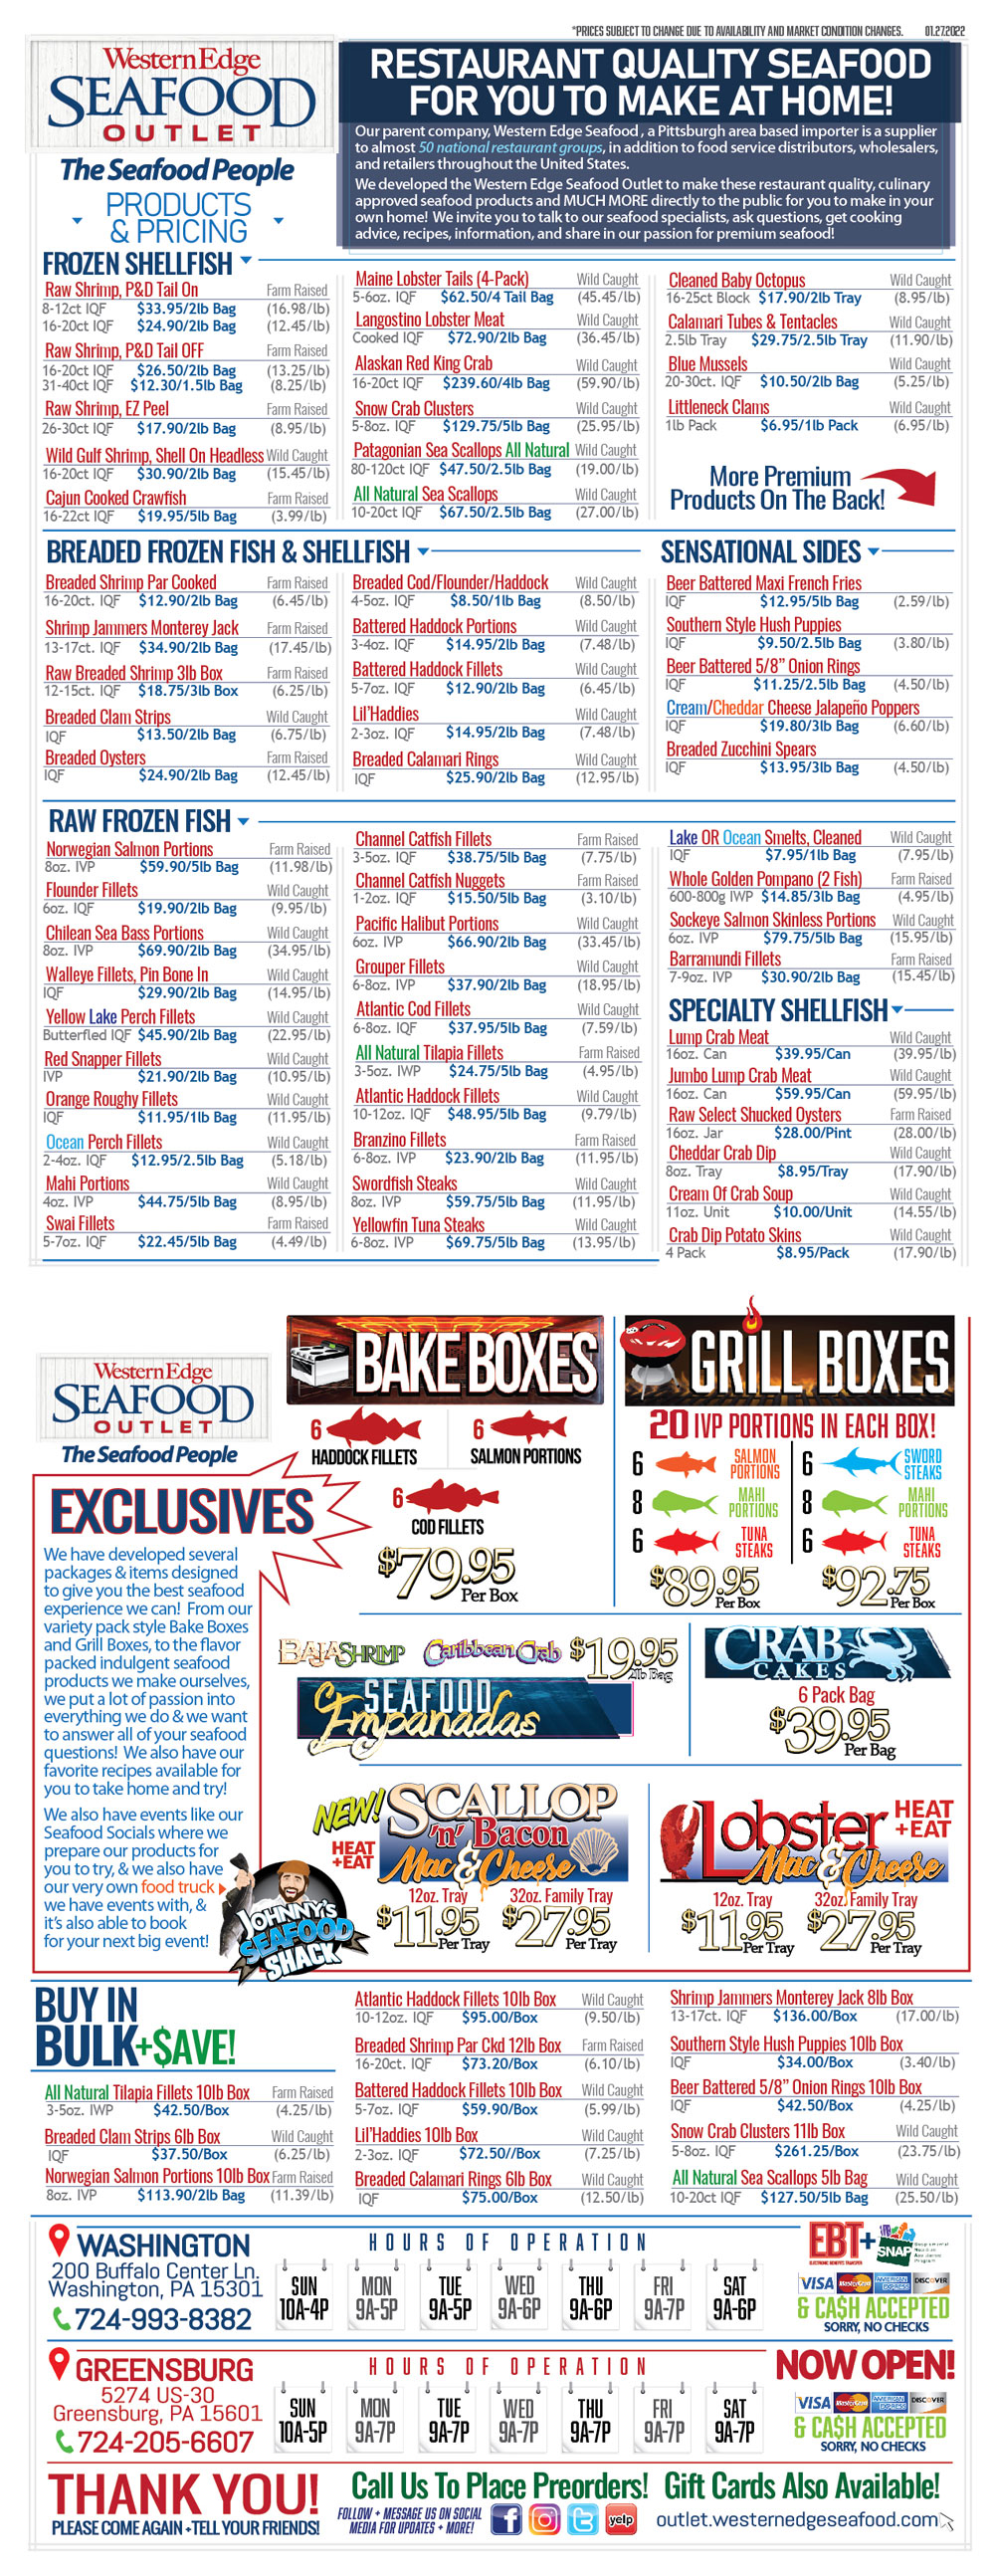 Western Edge Seafood Outlet